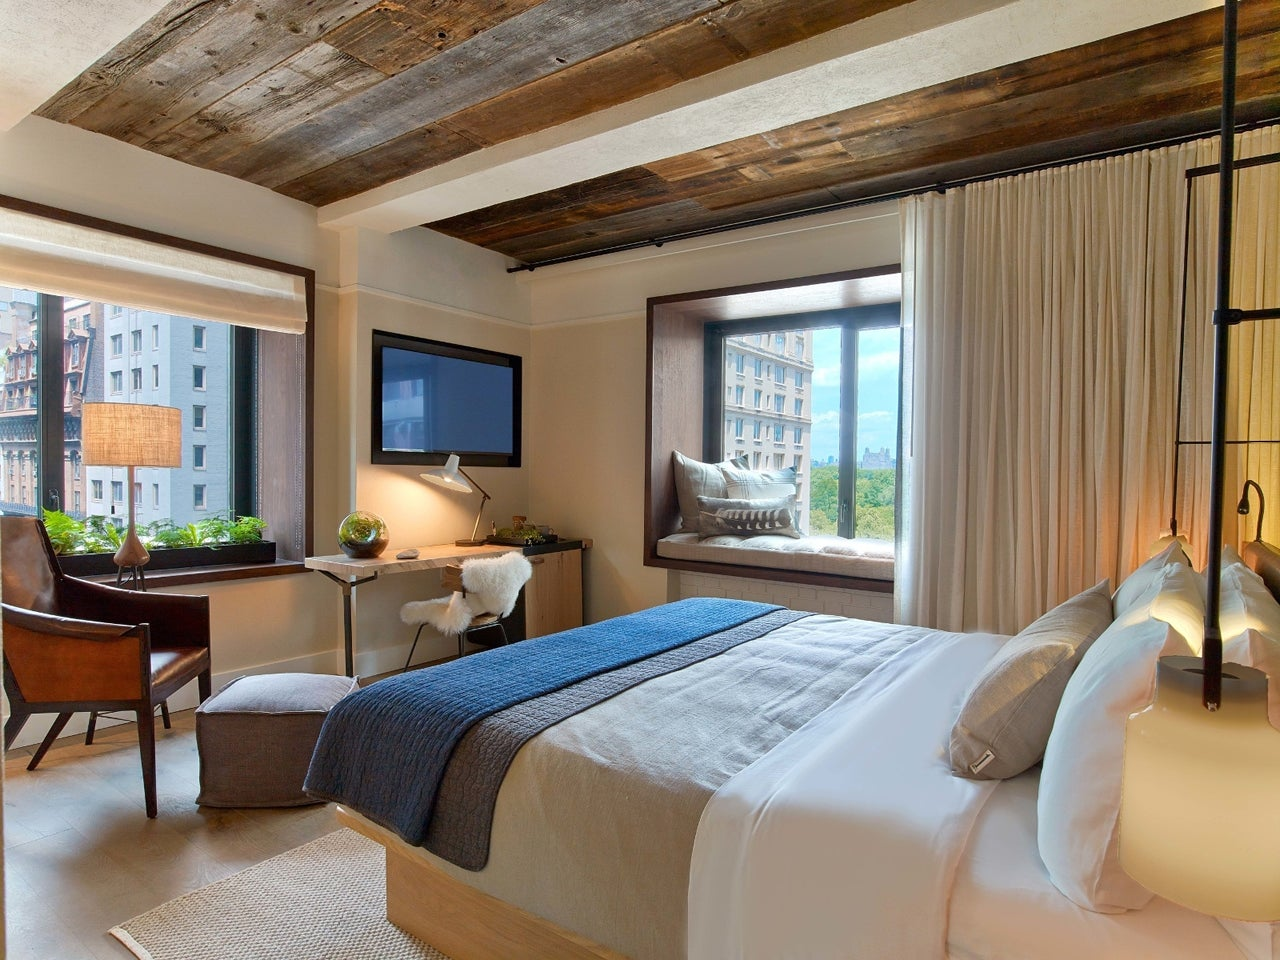 I work in room service at a 5-star hotel — these are the biggest Bedroom Decorating Ideas Like Hotels Html on hotel room design ideas, bedroom design ideas, hotel bedroom design, hotel bedroom christmas, hotel books, diy bedroom ideas, hotel bedroom decoration, hotel bedroom decor, hotel like bedroom ideas, chic bedroom ideas, cheap bedroom ideas, hotel bathroom, black and white bedroom ideas, magenta bedroom ideas, wedding night hotel room ideas, hotel bedding ideas, hotel interior design ideas, hotel master bedroom, adult bedroom room ideas, romantic hotel room ideas,